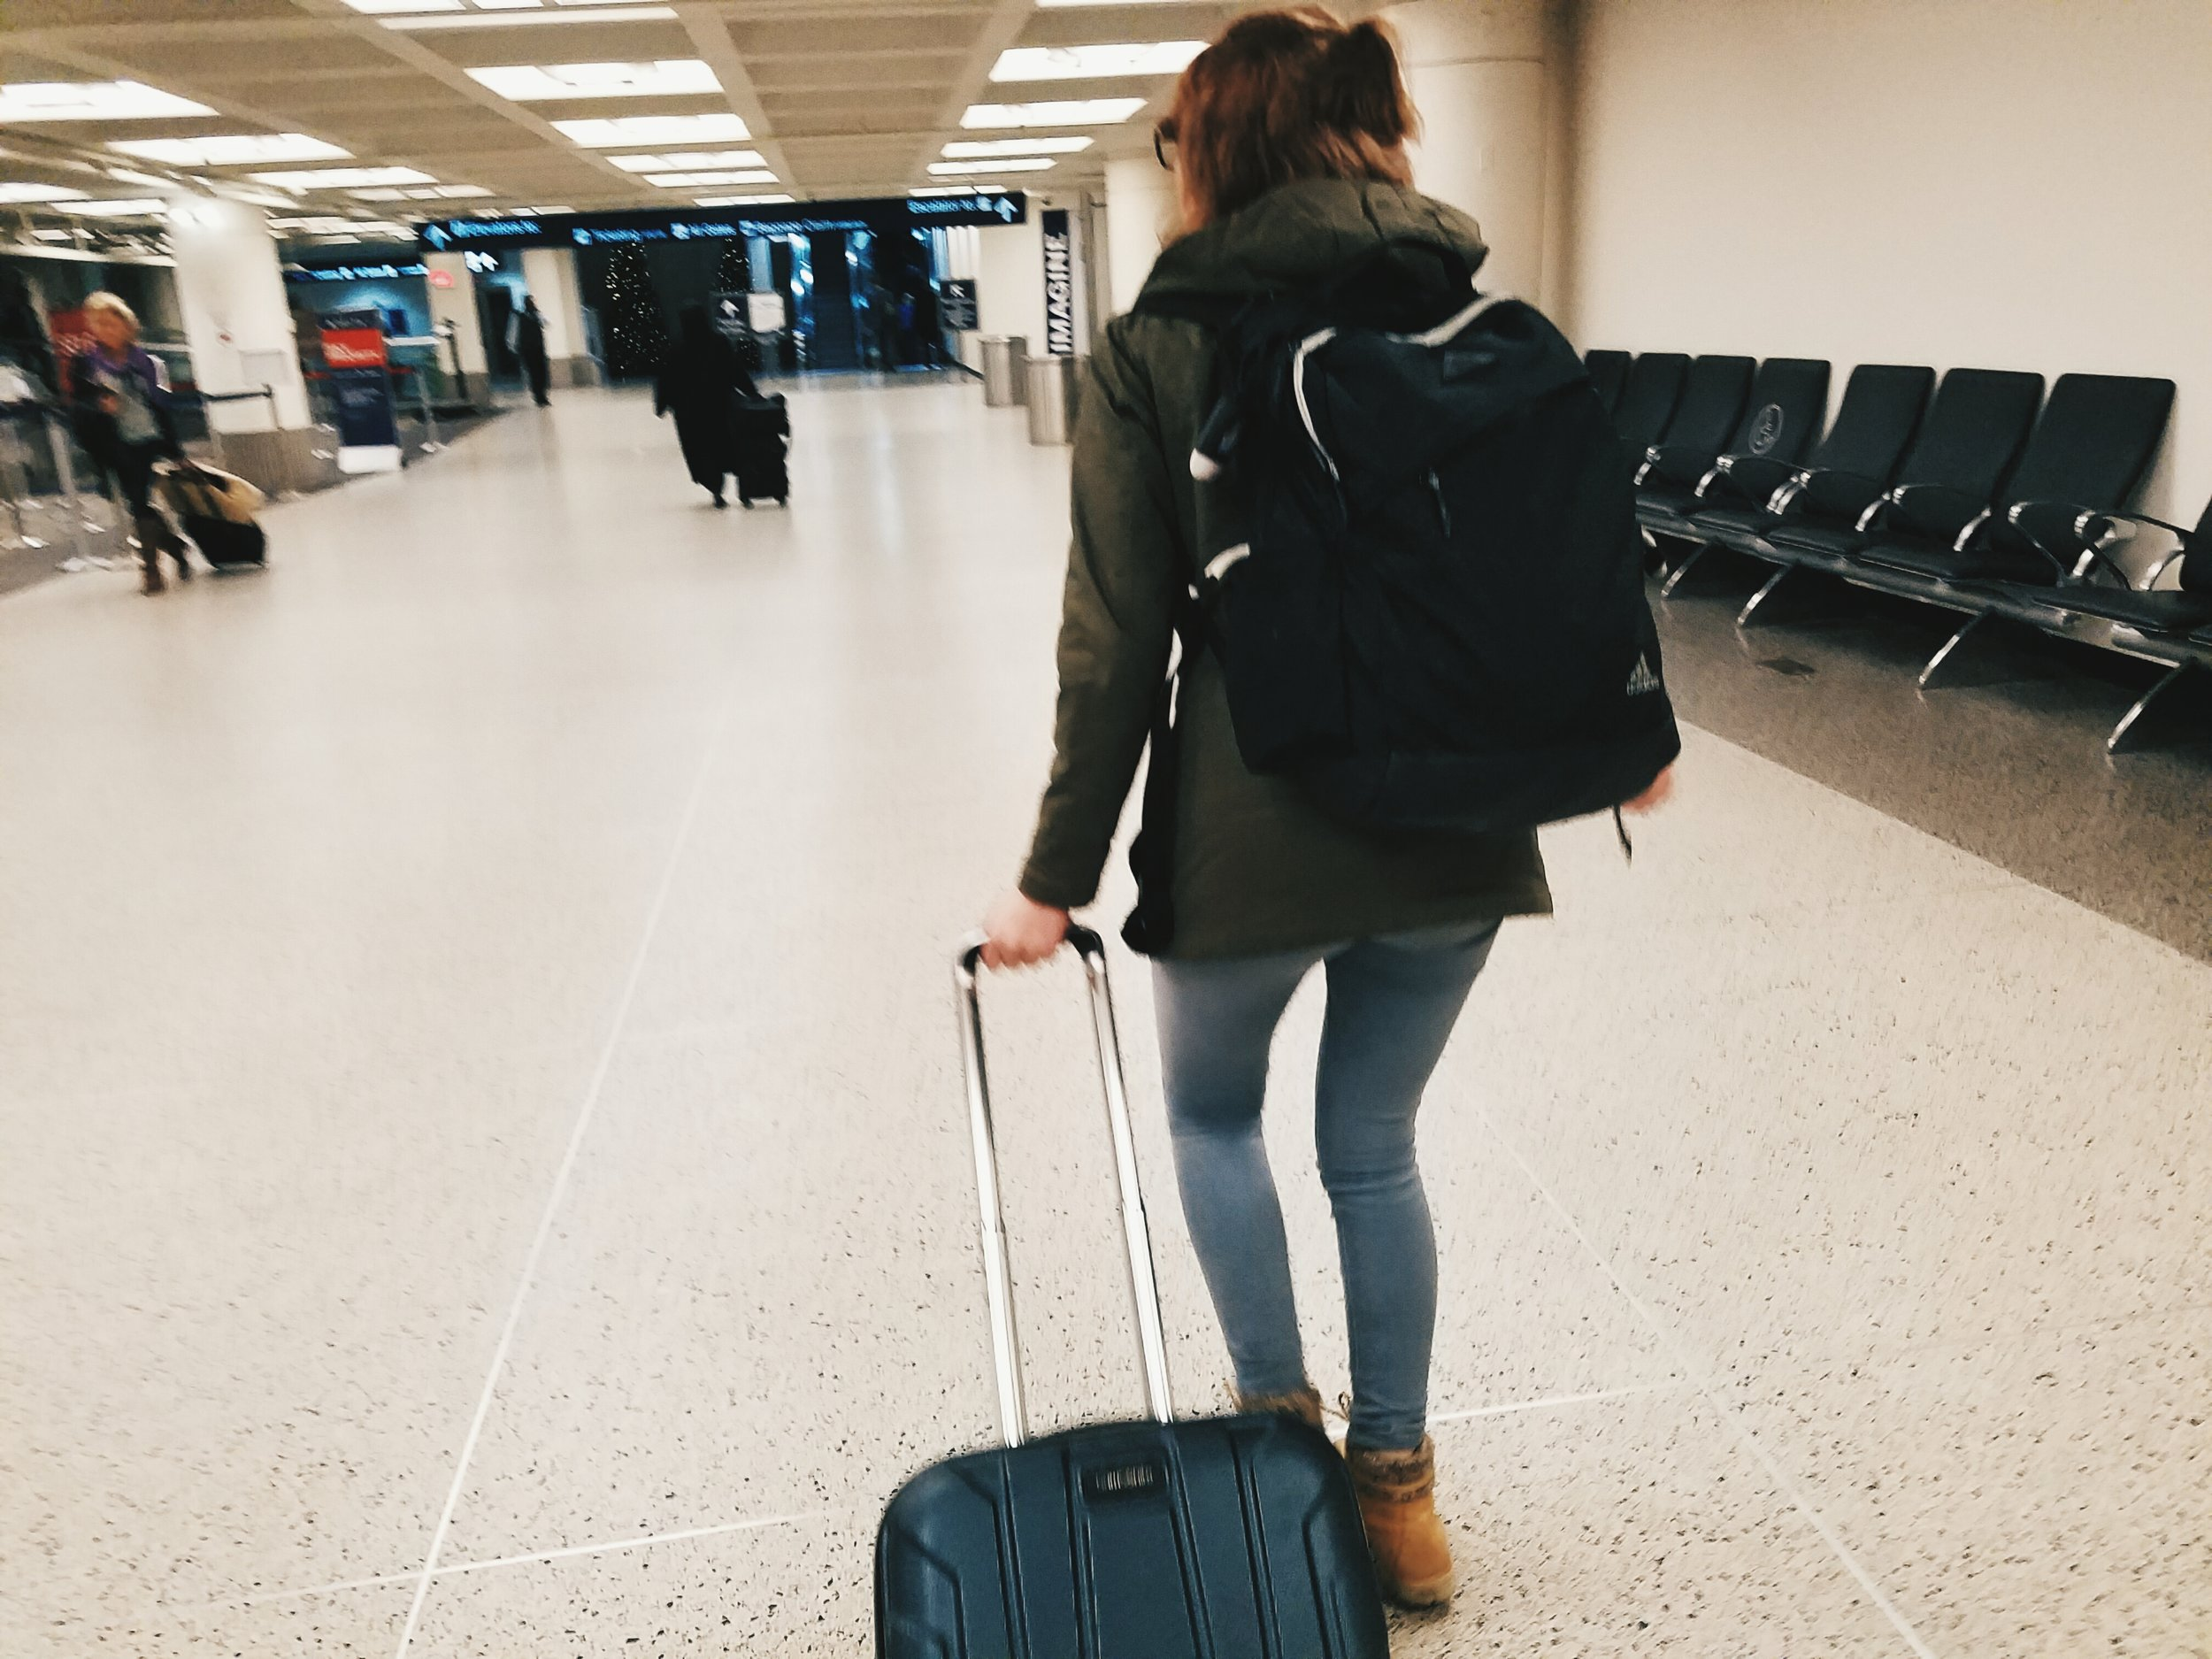 When my family moved across the country last fall, my sister planned numerous visits back, racking up even more frequent flyer miles than myself. You'll hear her advice in my article on flight rules.